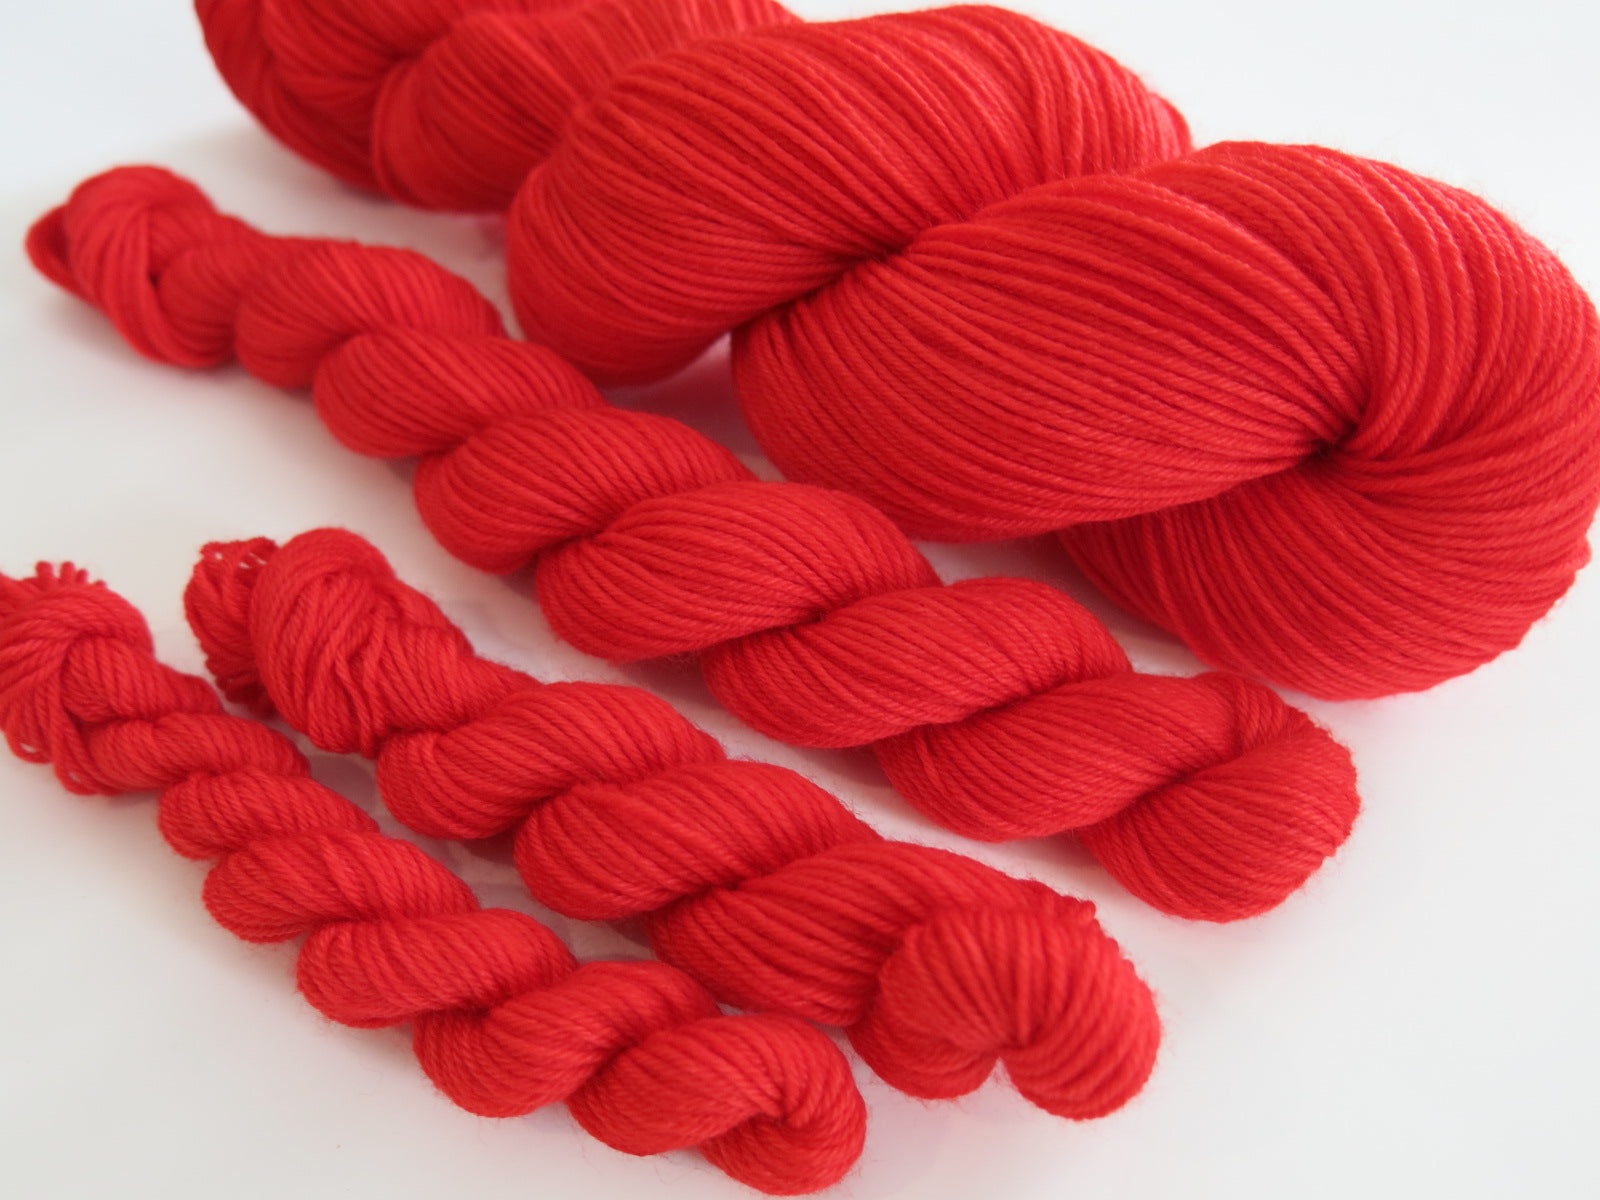 indie dyed red merino yarn skein by my mama knits